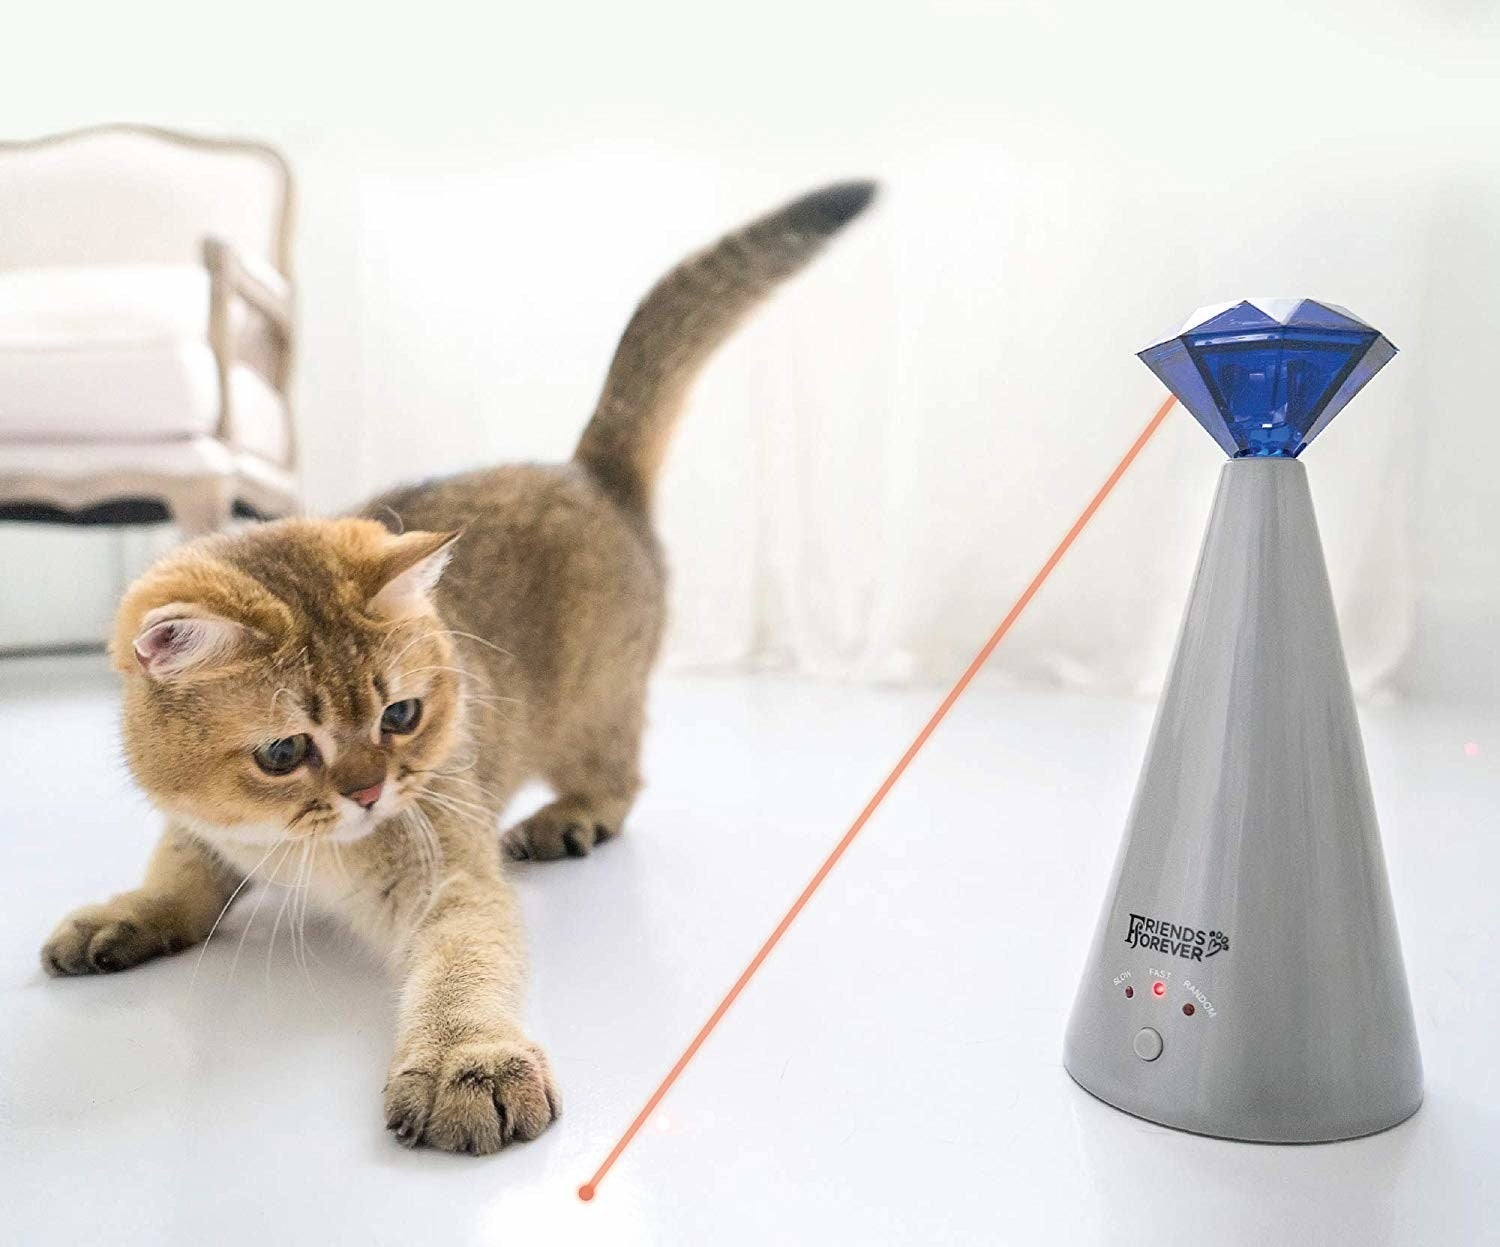 a cat pouncing on the laser coming from the toy